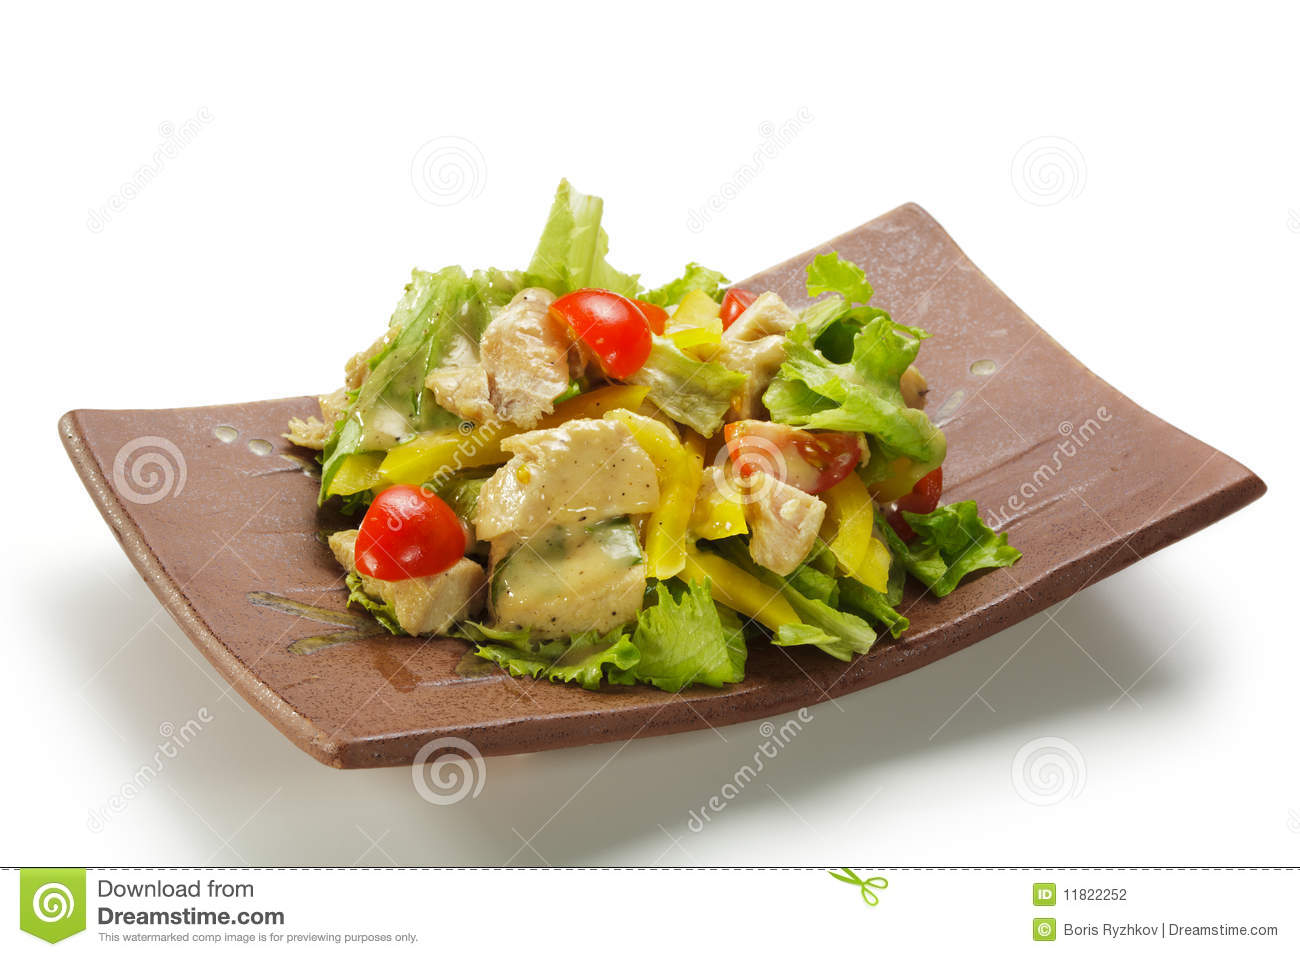 how to cook chicken breast for salad